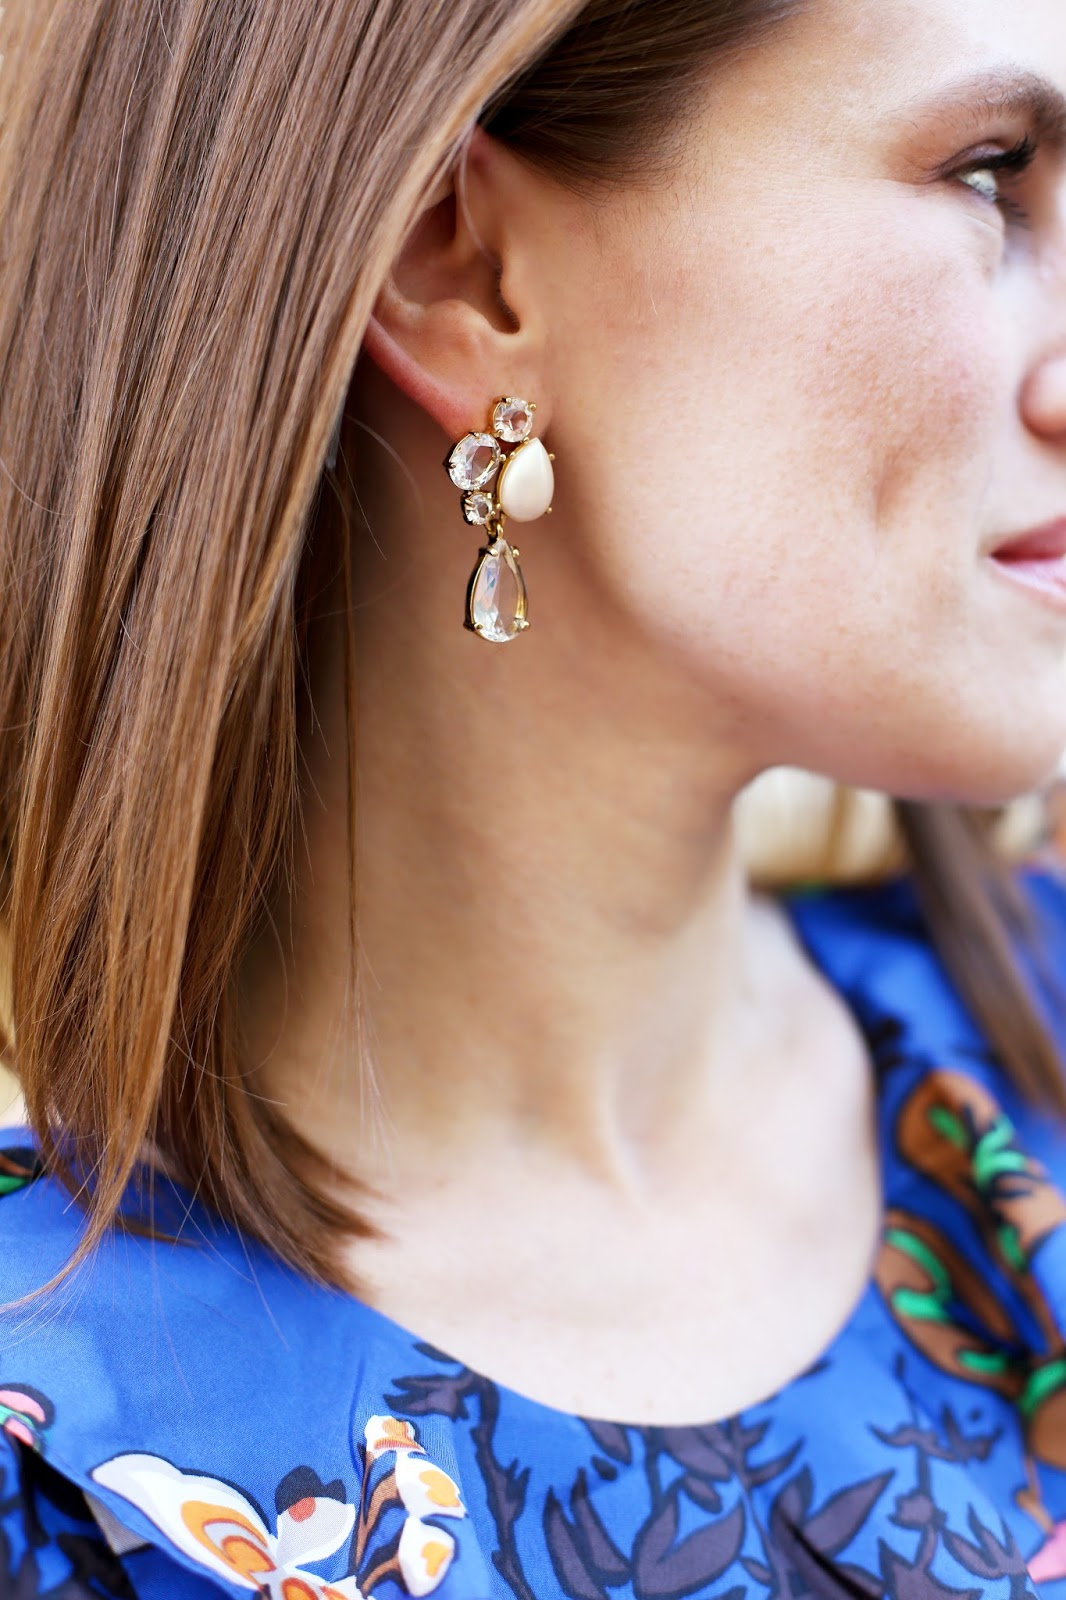 kate spade earrings - kate spade surprise sale - last kate spade surprise sale - kate spade bought by coach